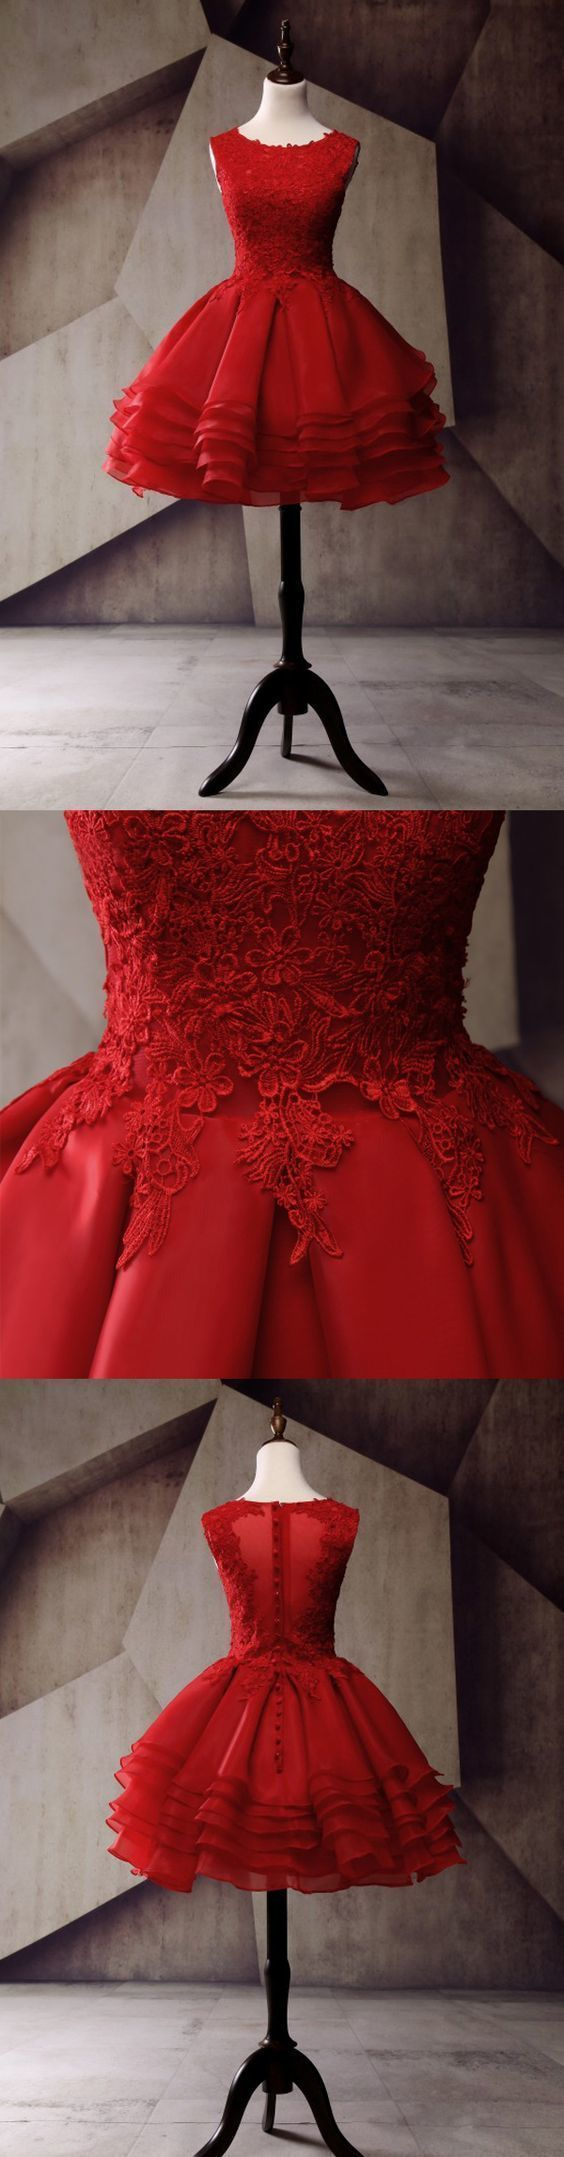 Lace Homecoming Dress, Applique Junior School Dress, Red Graduation Dress, Sexy